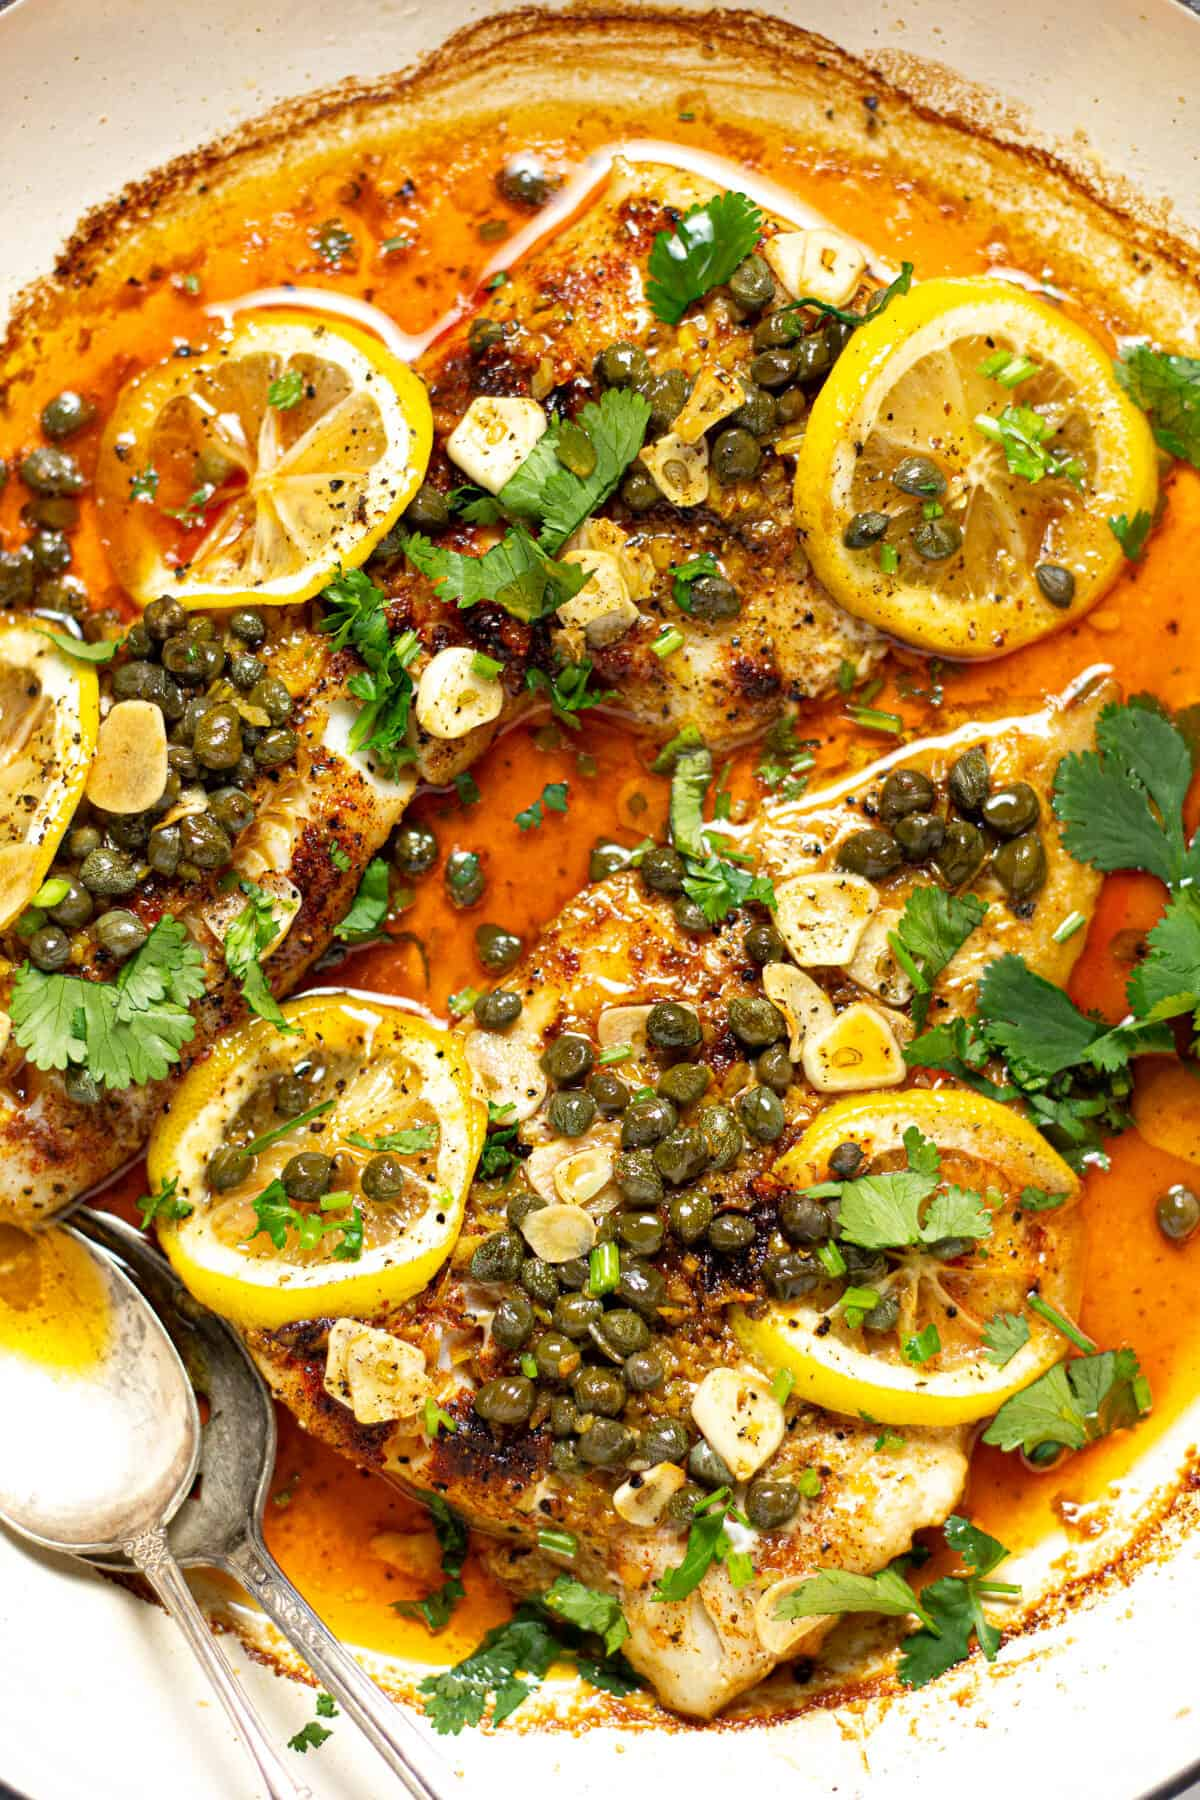 Overhead shot of a pot filled with baked Mediterranean cod garnished with fresh cilantro